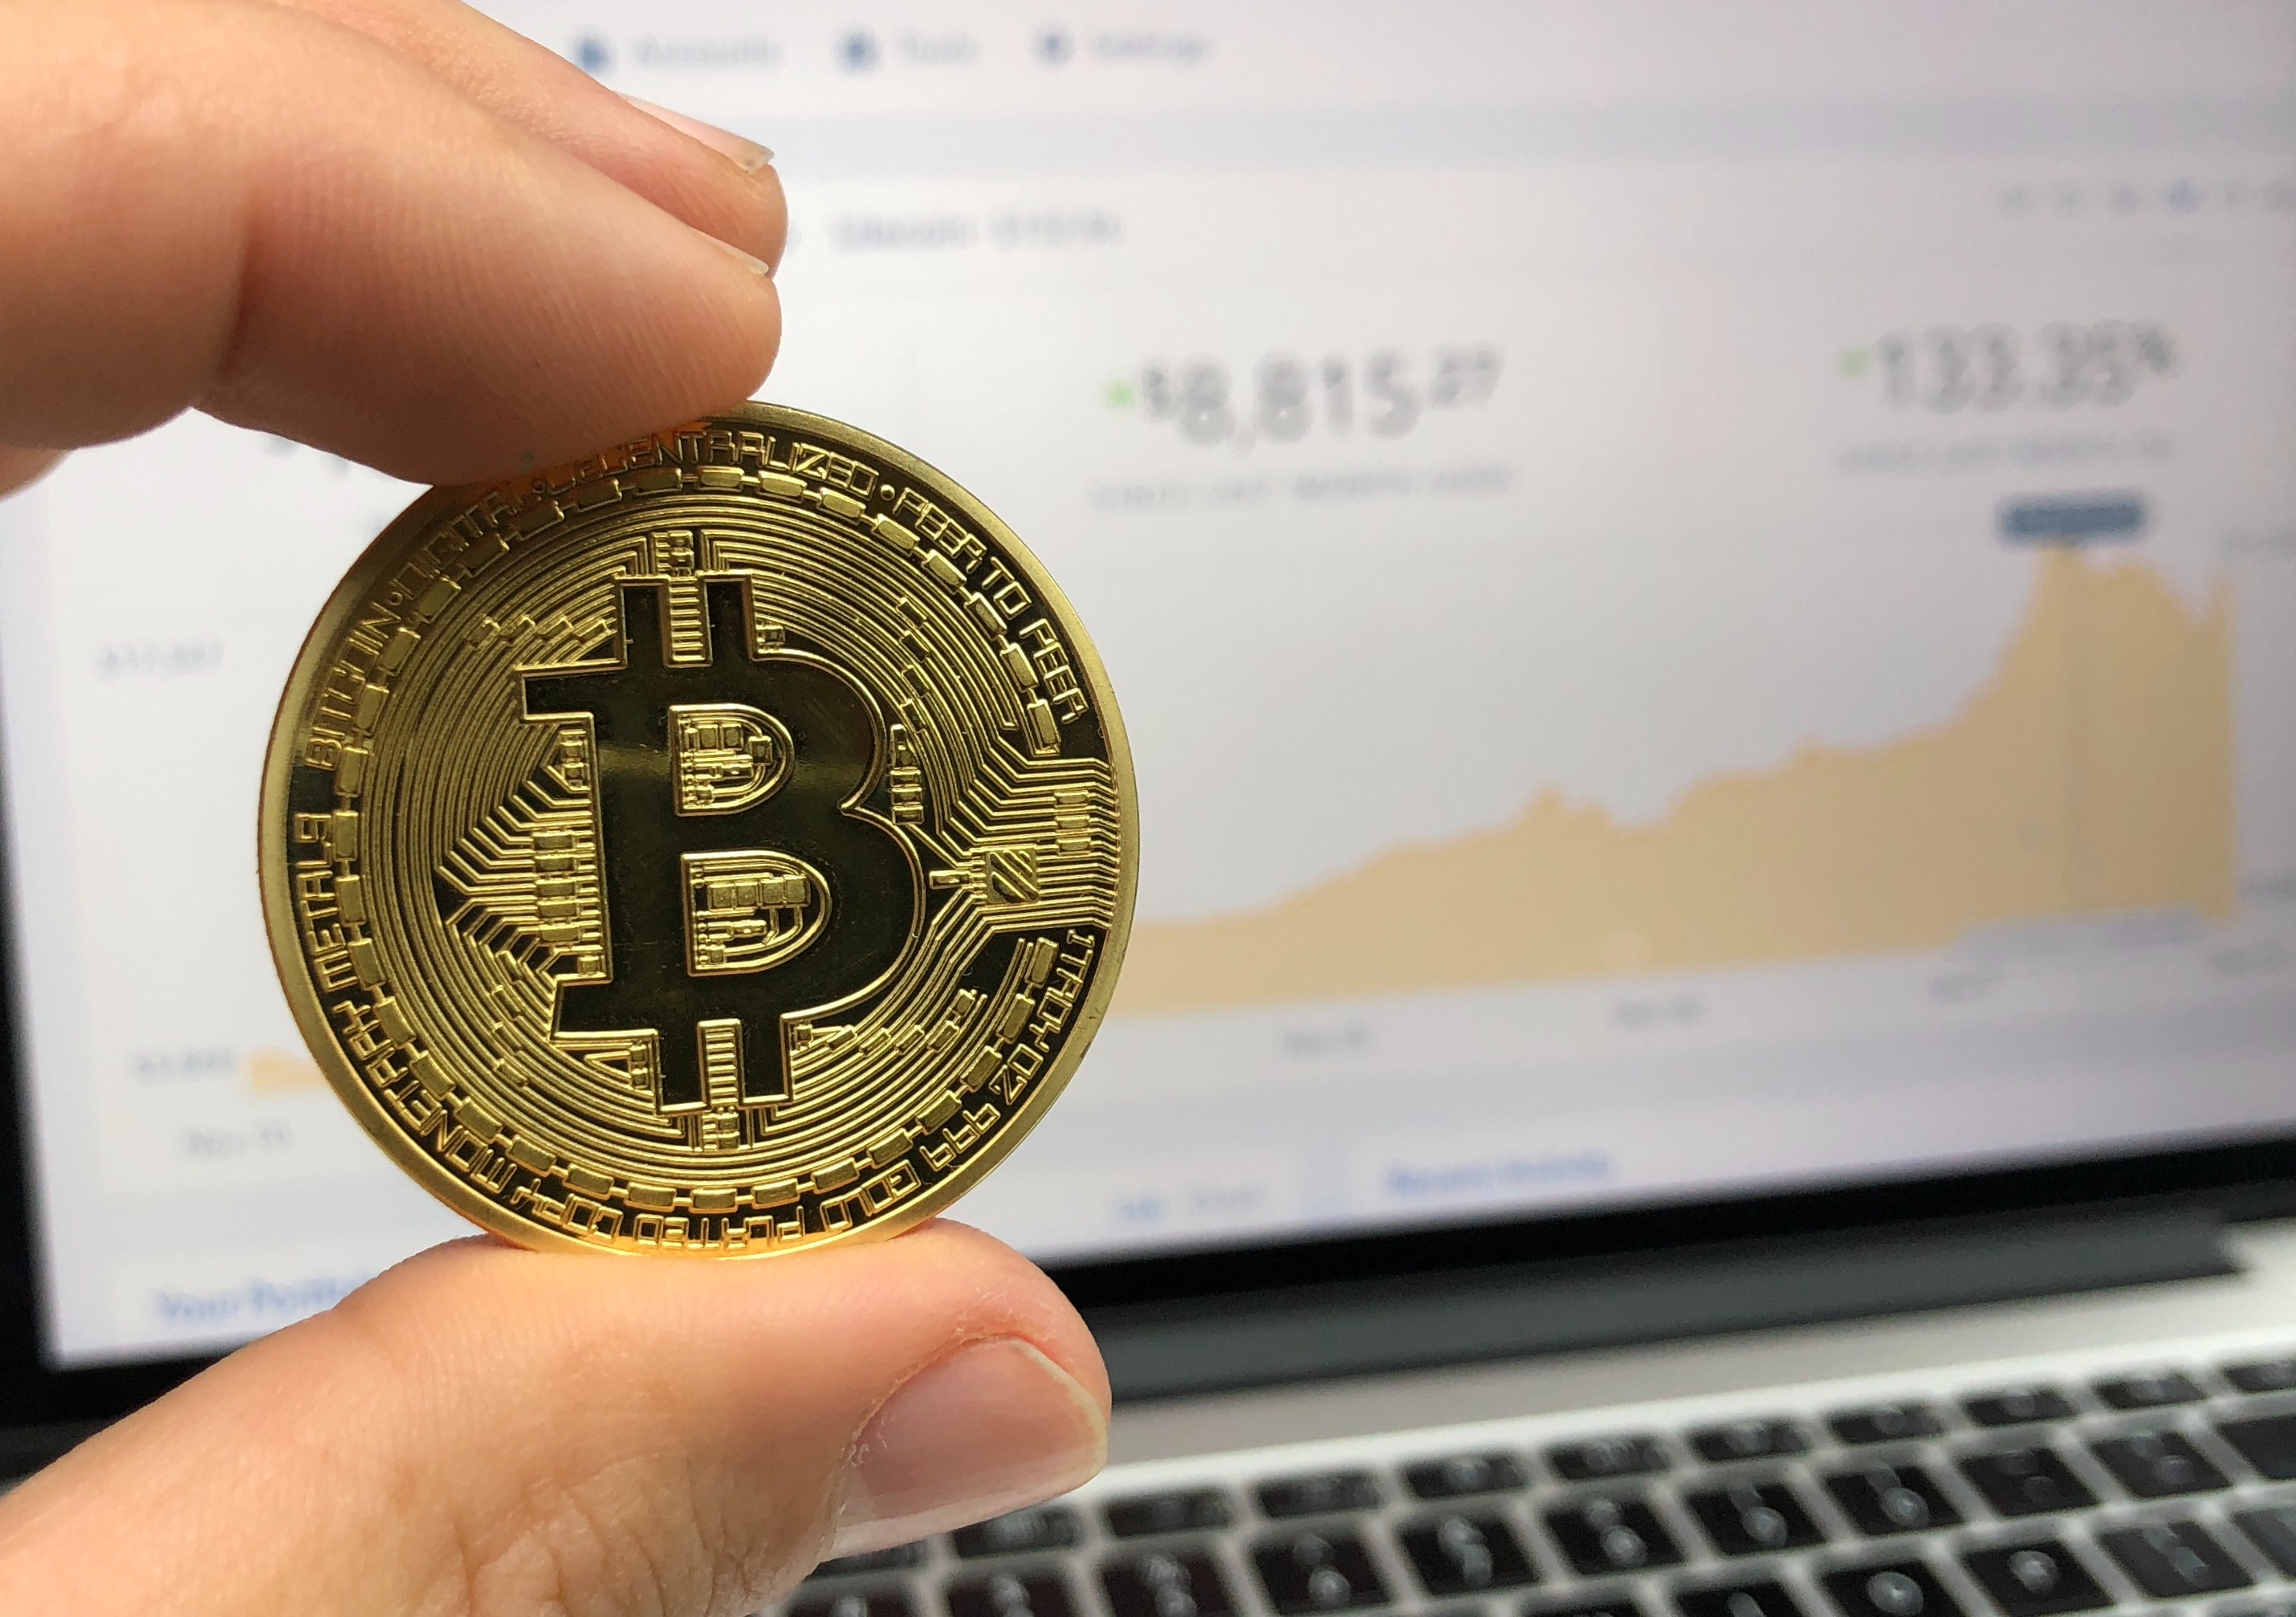 Bitcoin, cryptoassets and cryptocurrencies